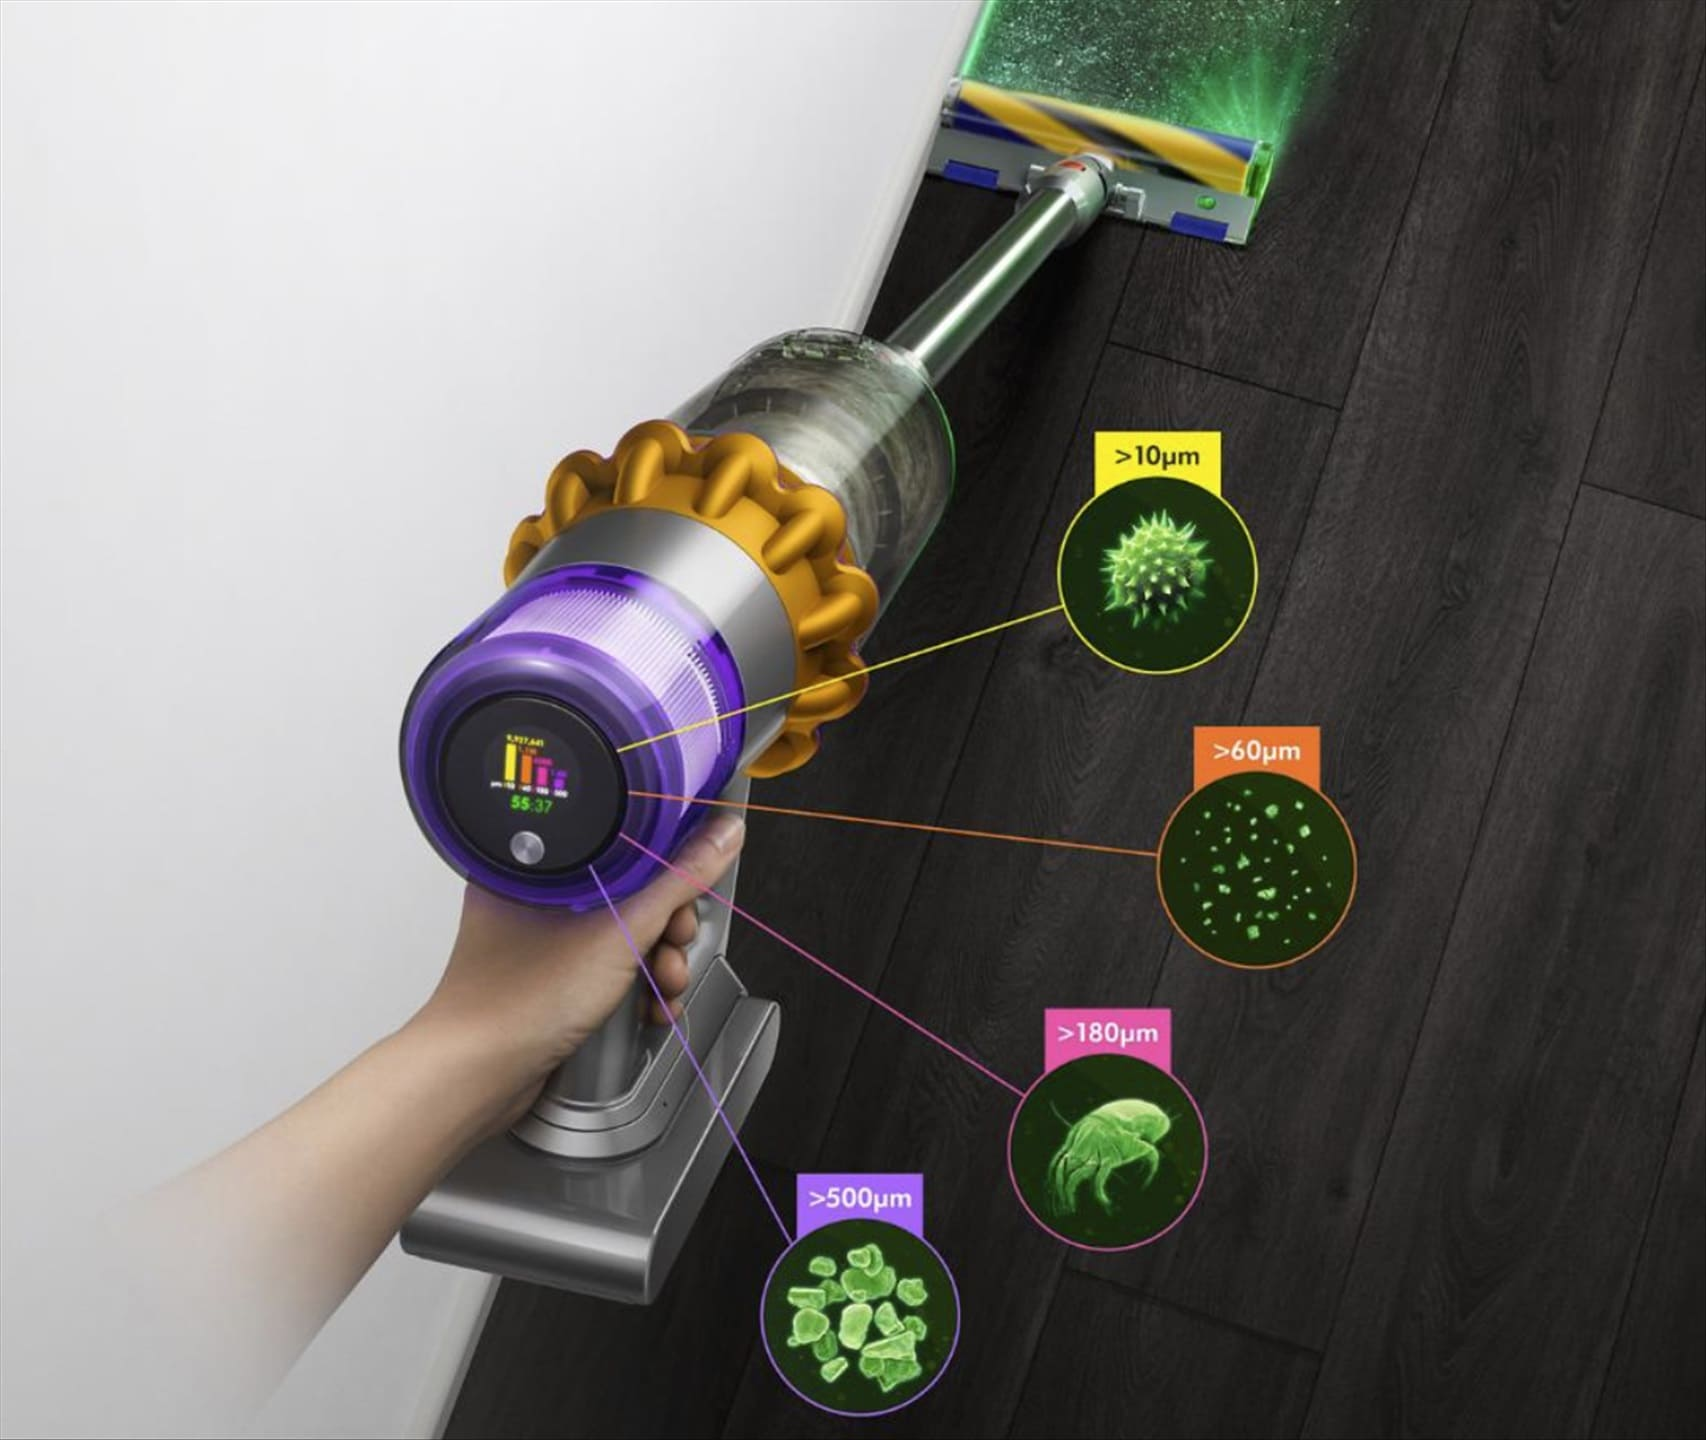 Dyson's next generation of cordless vacuum cleaner can detect, count, and tell the particles it's sucking